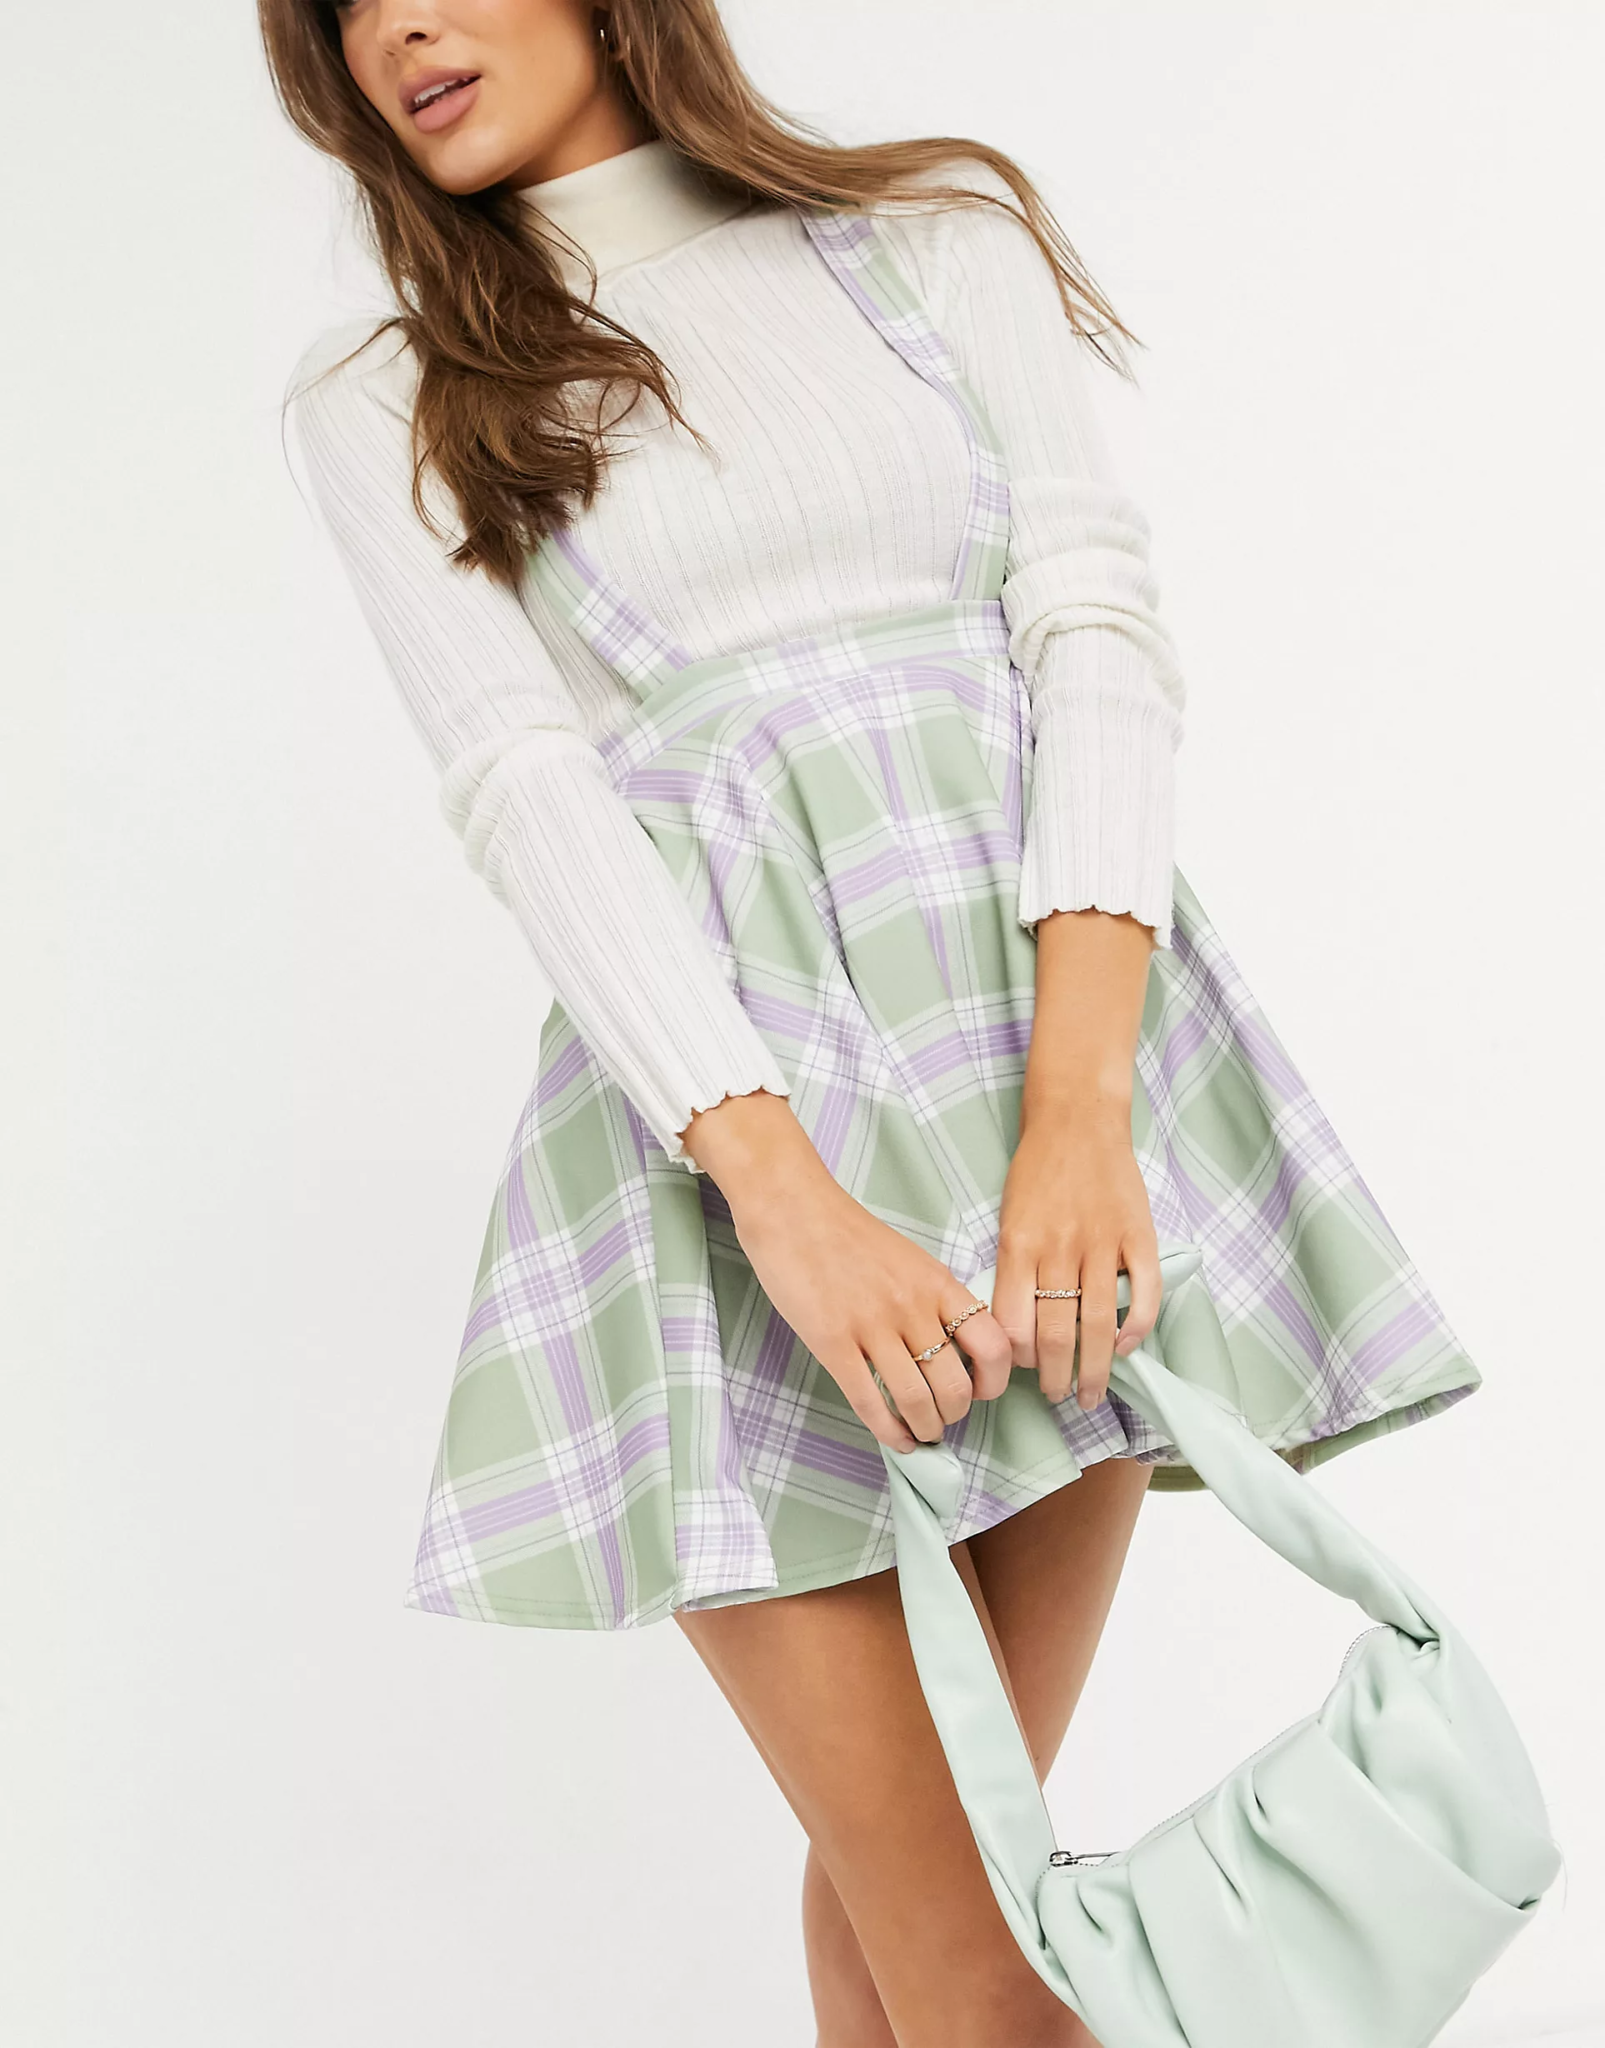 Pinafore with flippy skirt in lilac check print, ASOS DESIGN, £20.00